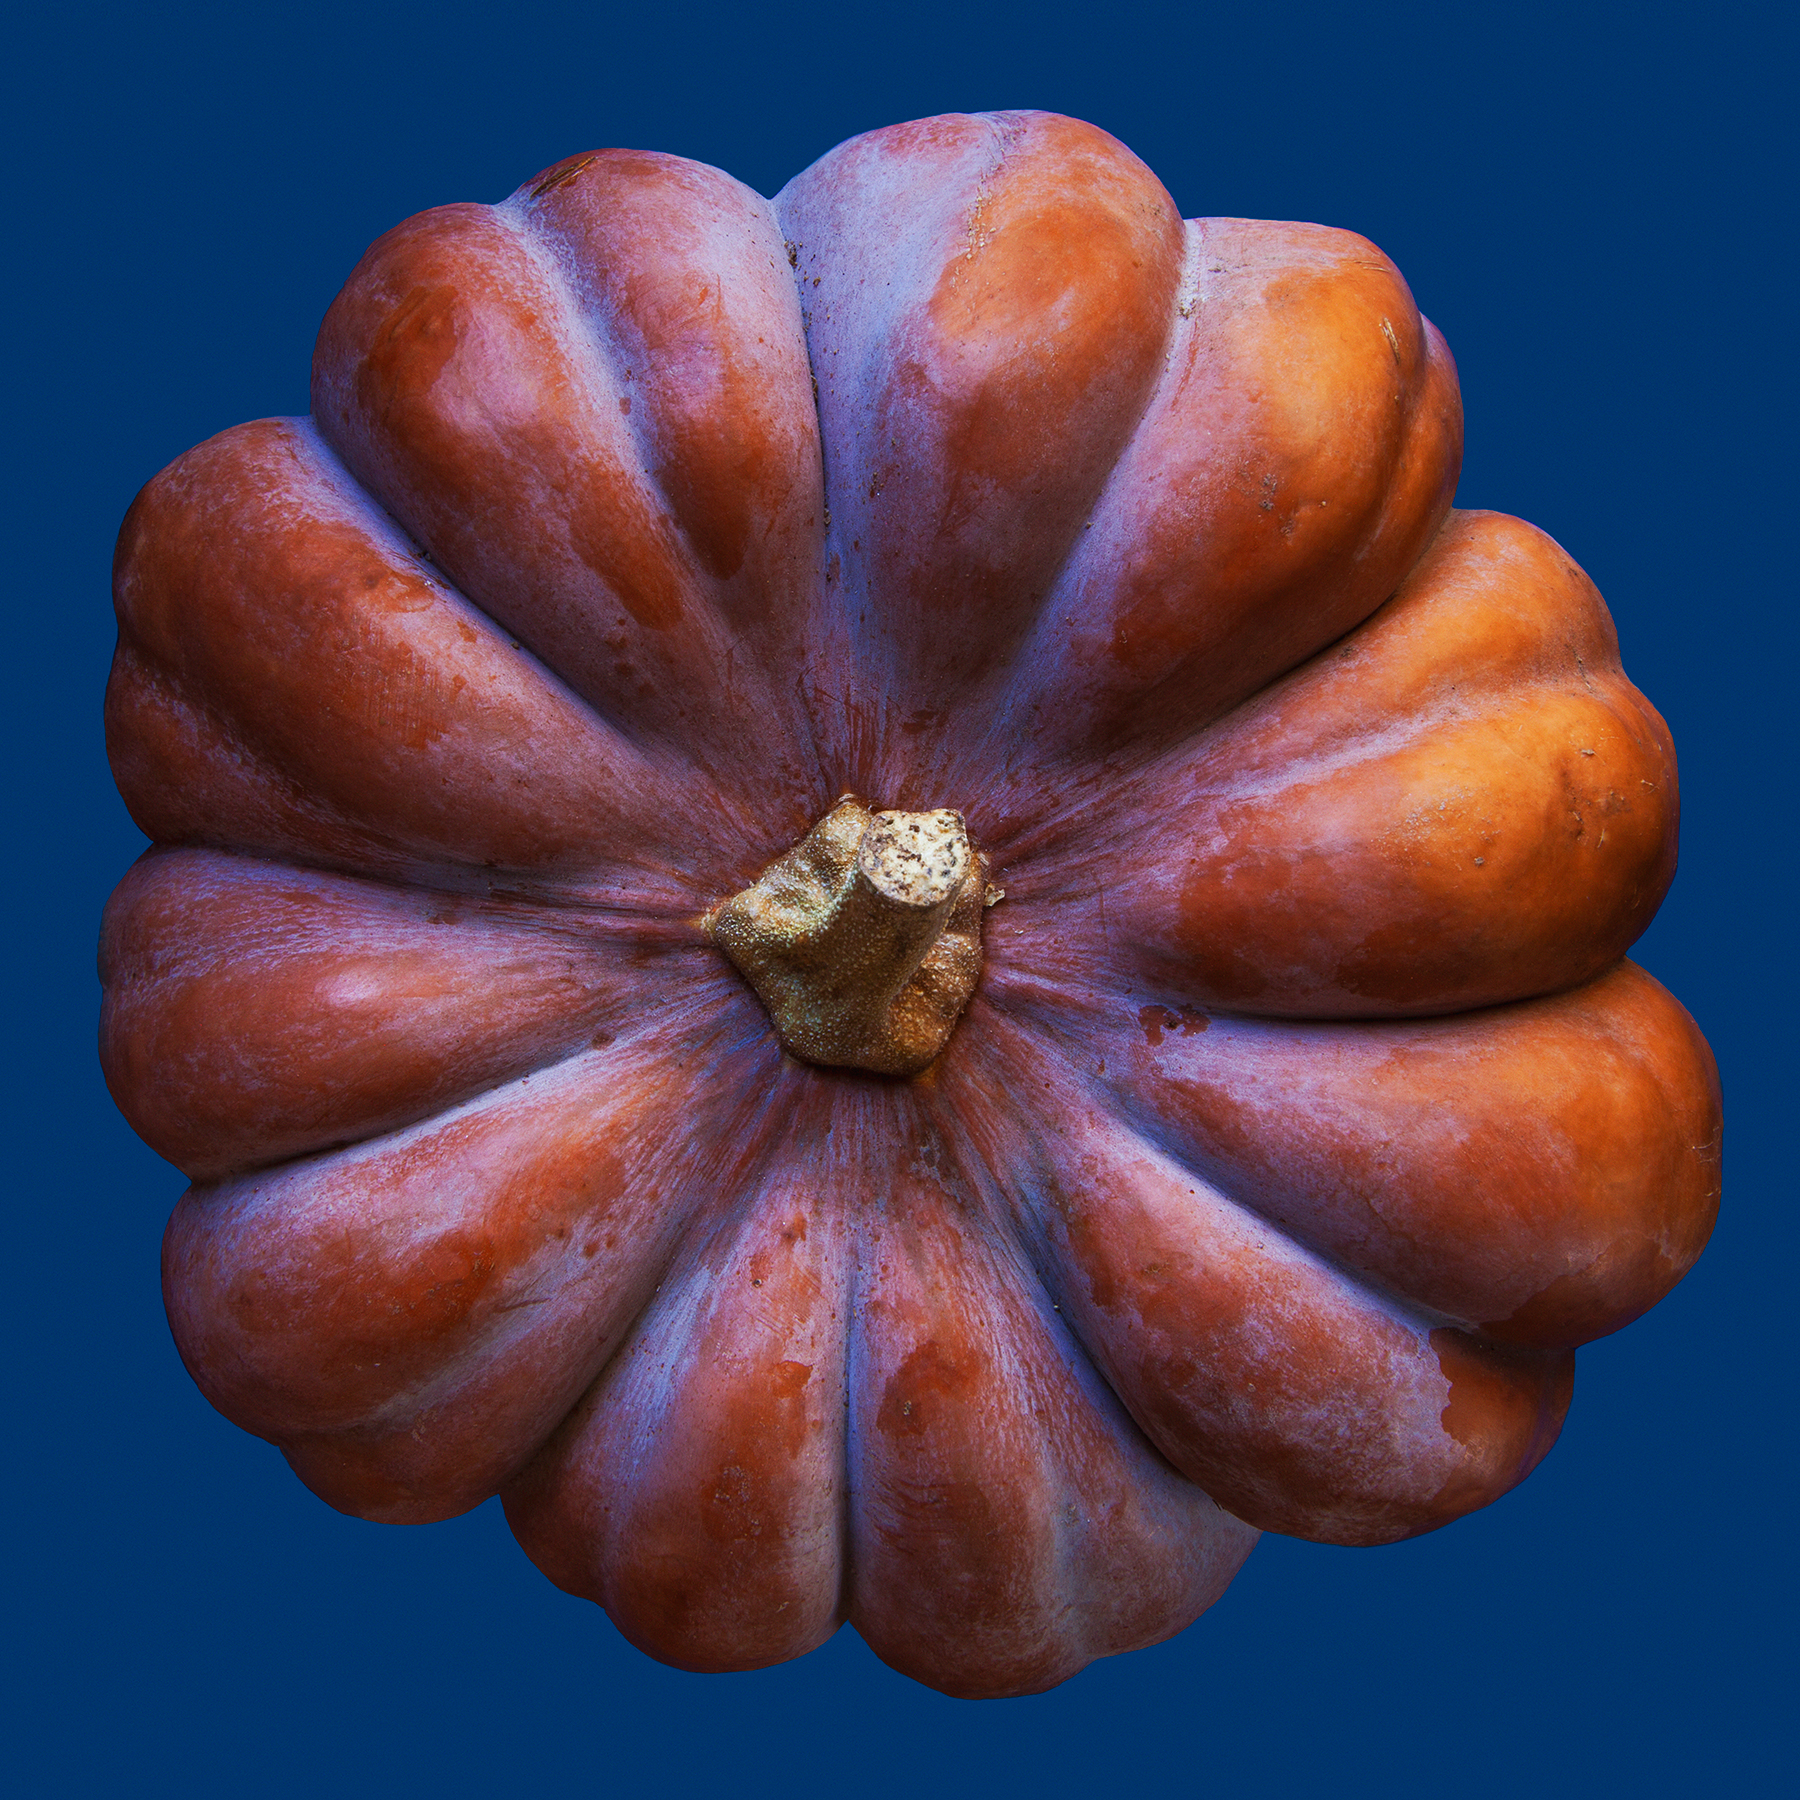 PUMKIN-CINDERELLA-ORGANIC-FOOD-VEGETABLE-©-JONATHAN-R.-BECKERMAN-PHOTOGRAPHY.jpg